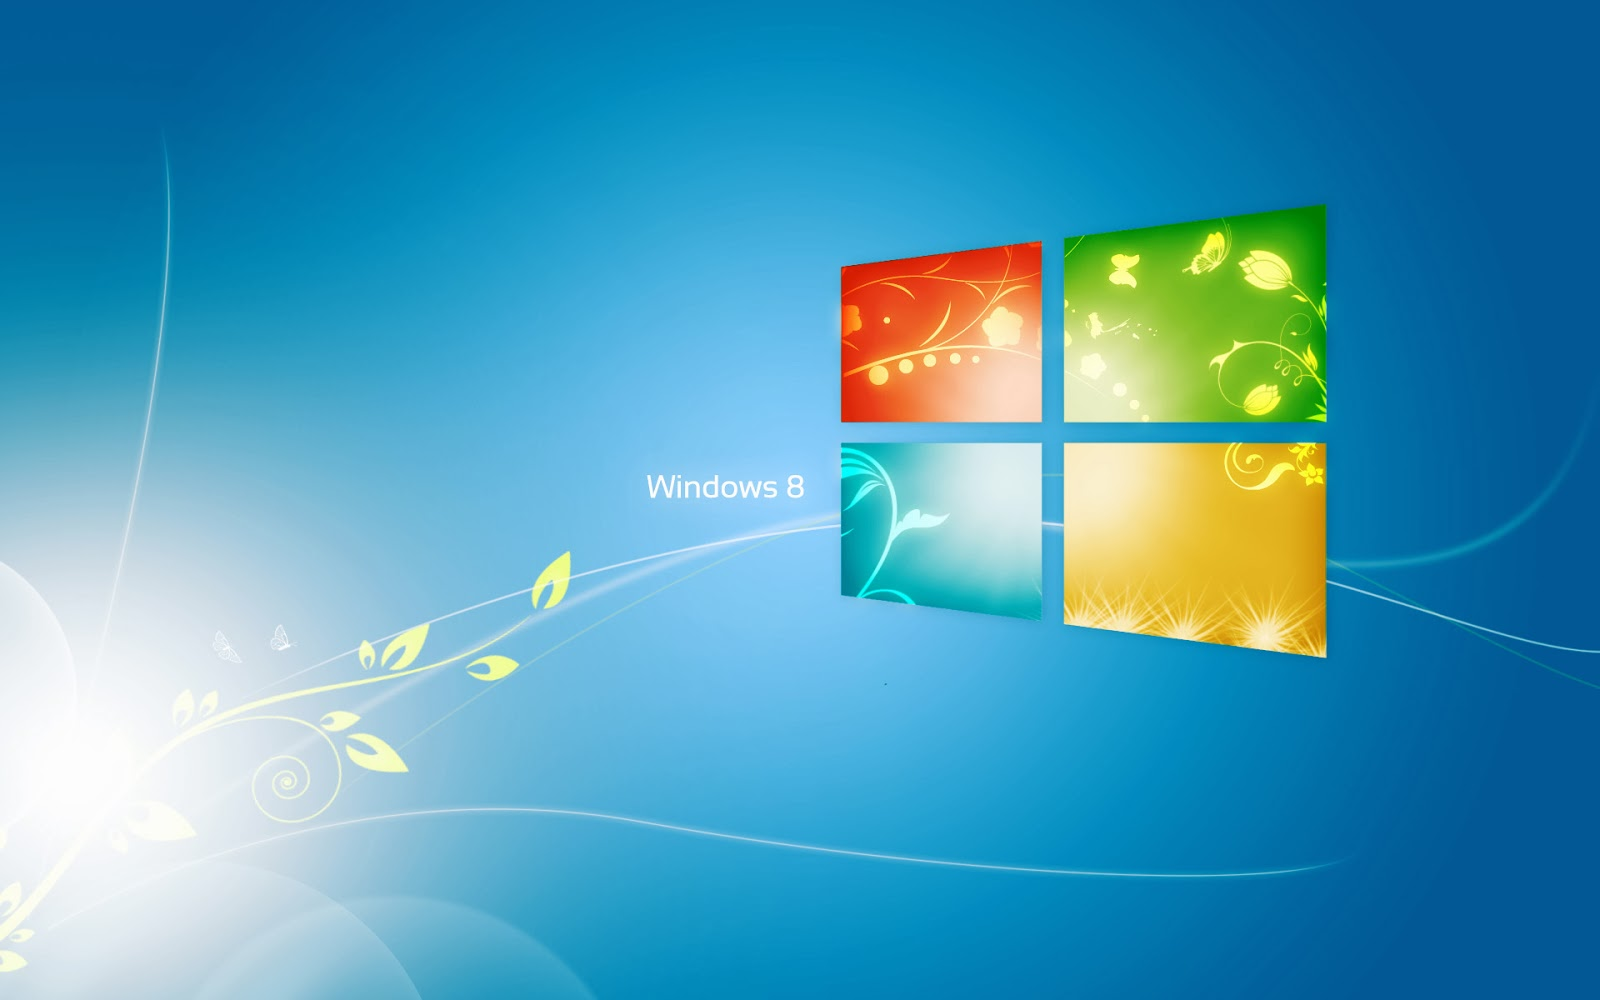 HD Wallpapers 1080p windows 8 | Nice Pics Gallery